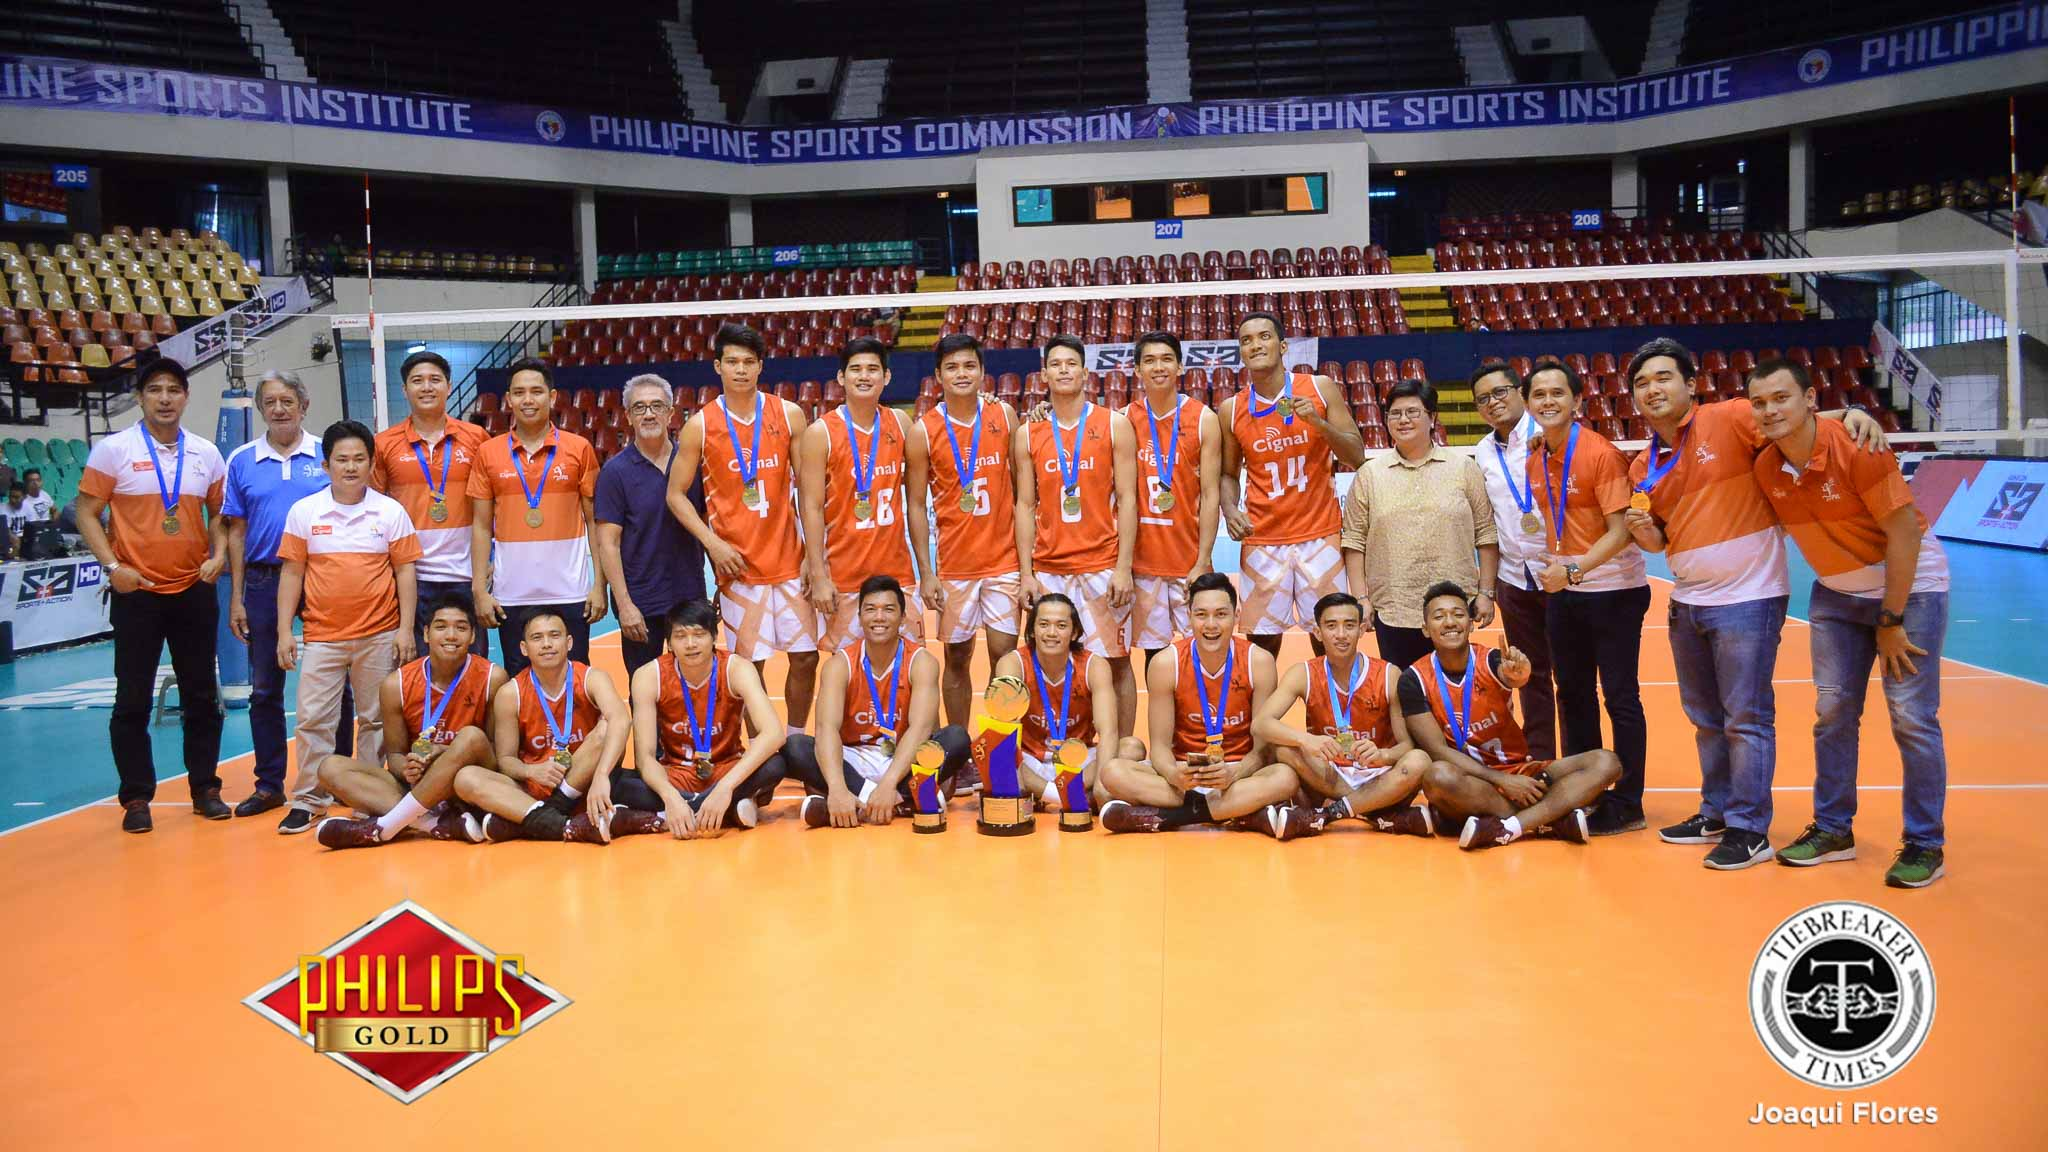 Tiebreaker Times Cignal breaks Air Force's spell, claims Reinforced Conference title News PVL Volleyball  Vince Mangulabnan Sandy Montero Rhovyl Verayo Rex Intal RanRan Abdilla Oliver Almadro Mark Alfafara Cignal HD Spikers Bryan Bagunas Air Force Airmen 2017 PVL Season 2017 PVL Men's Reinforced Conference